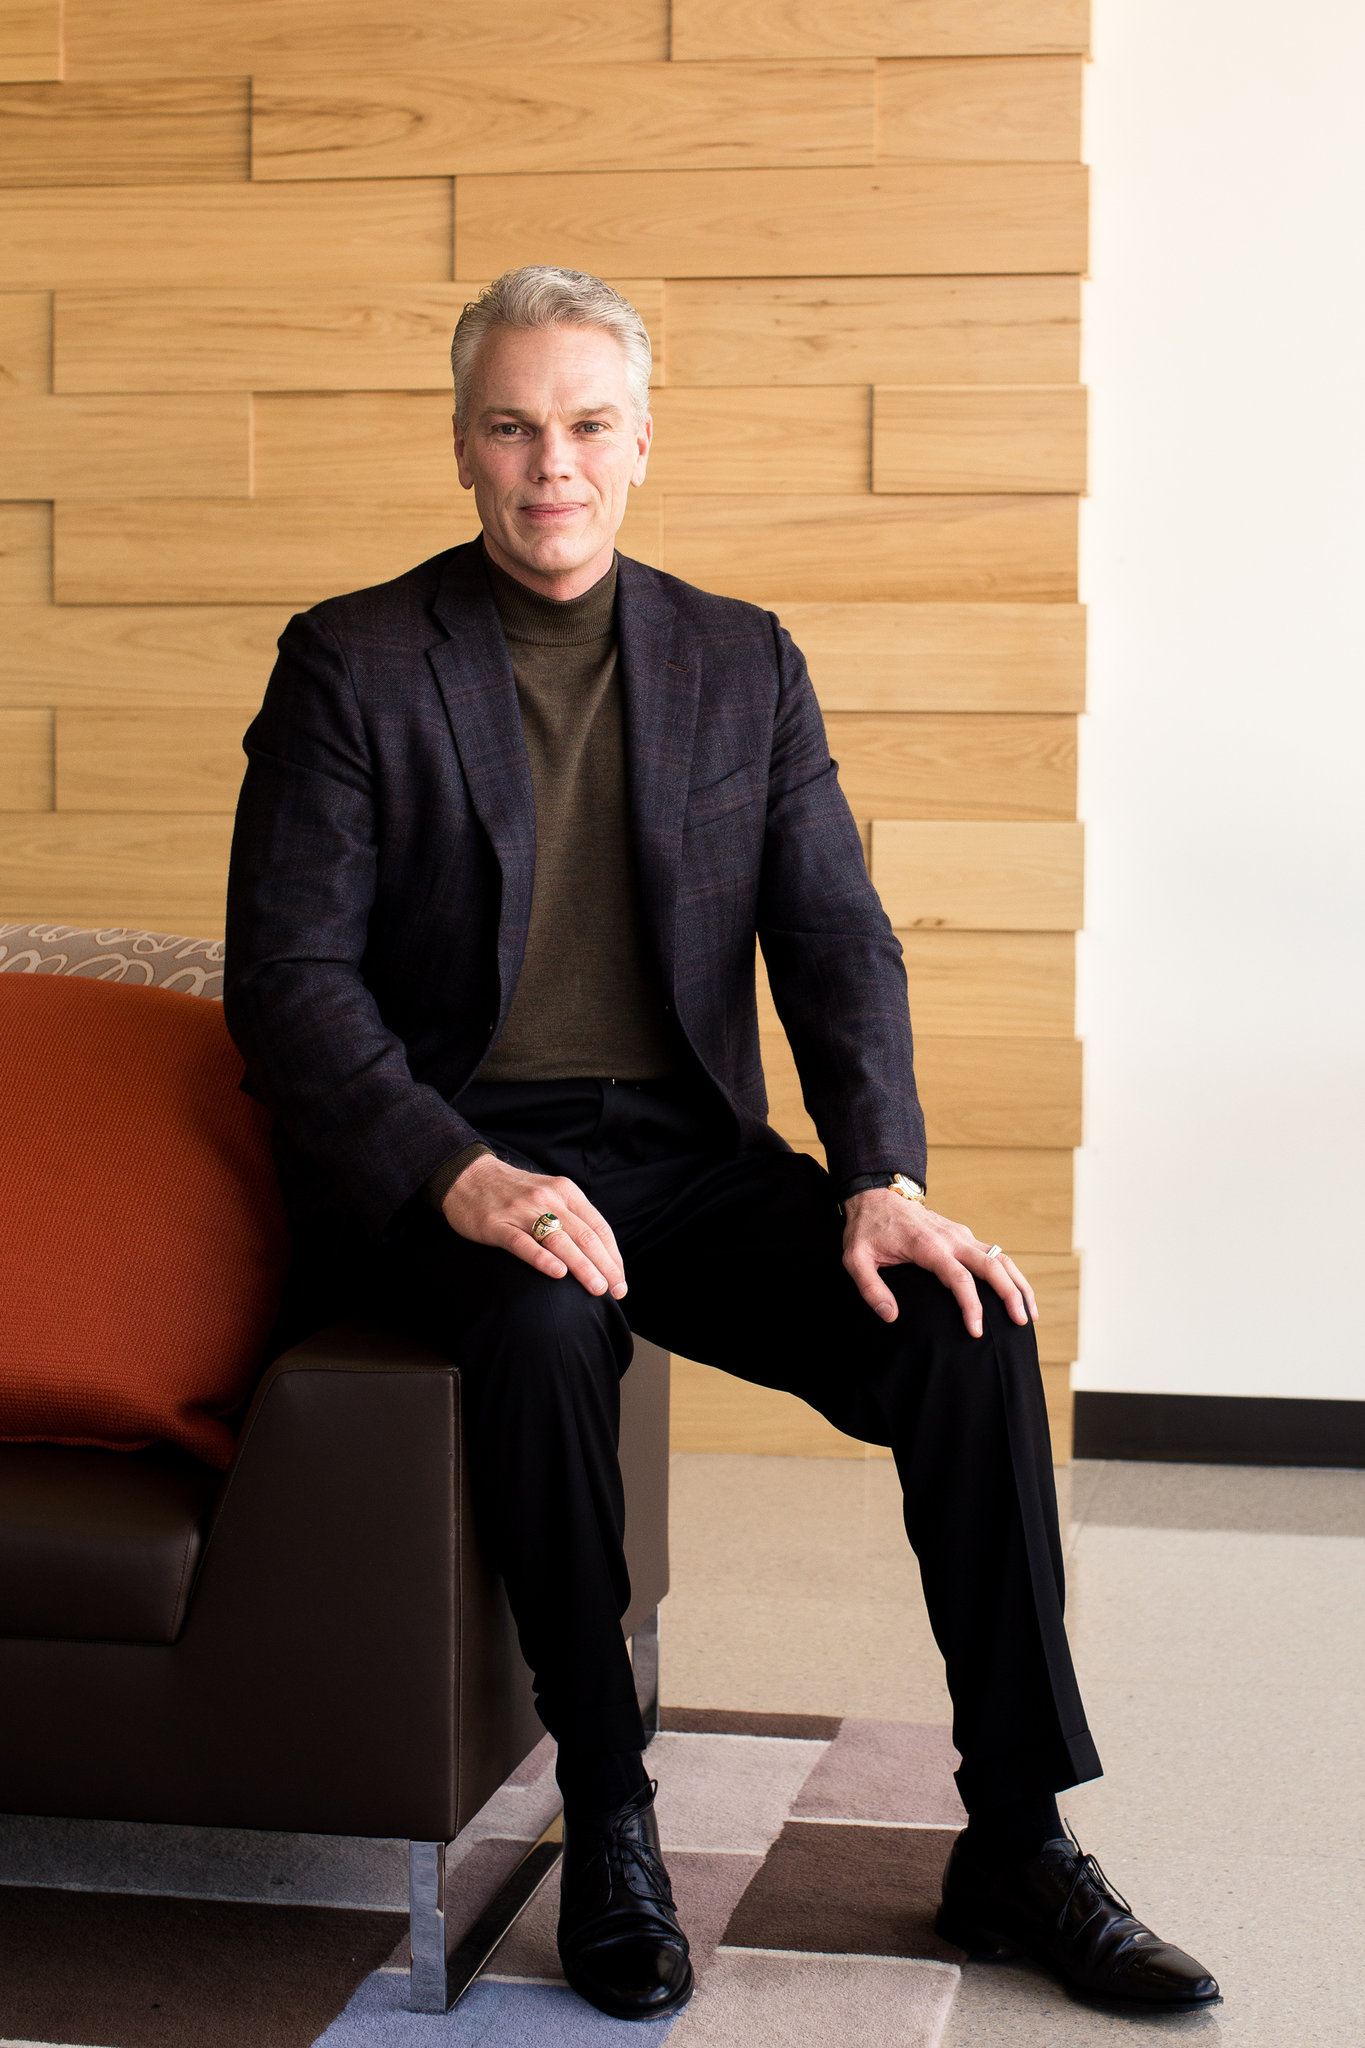 Brad D. Smith, CEO of Intuit